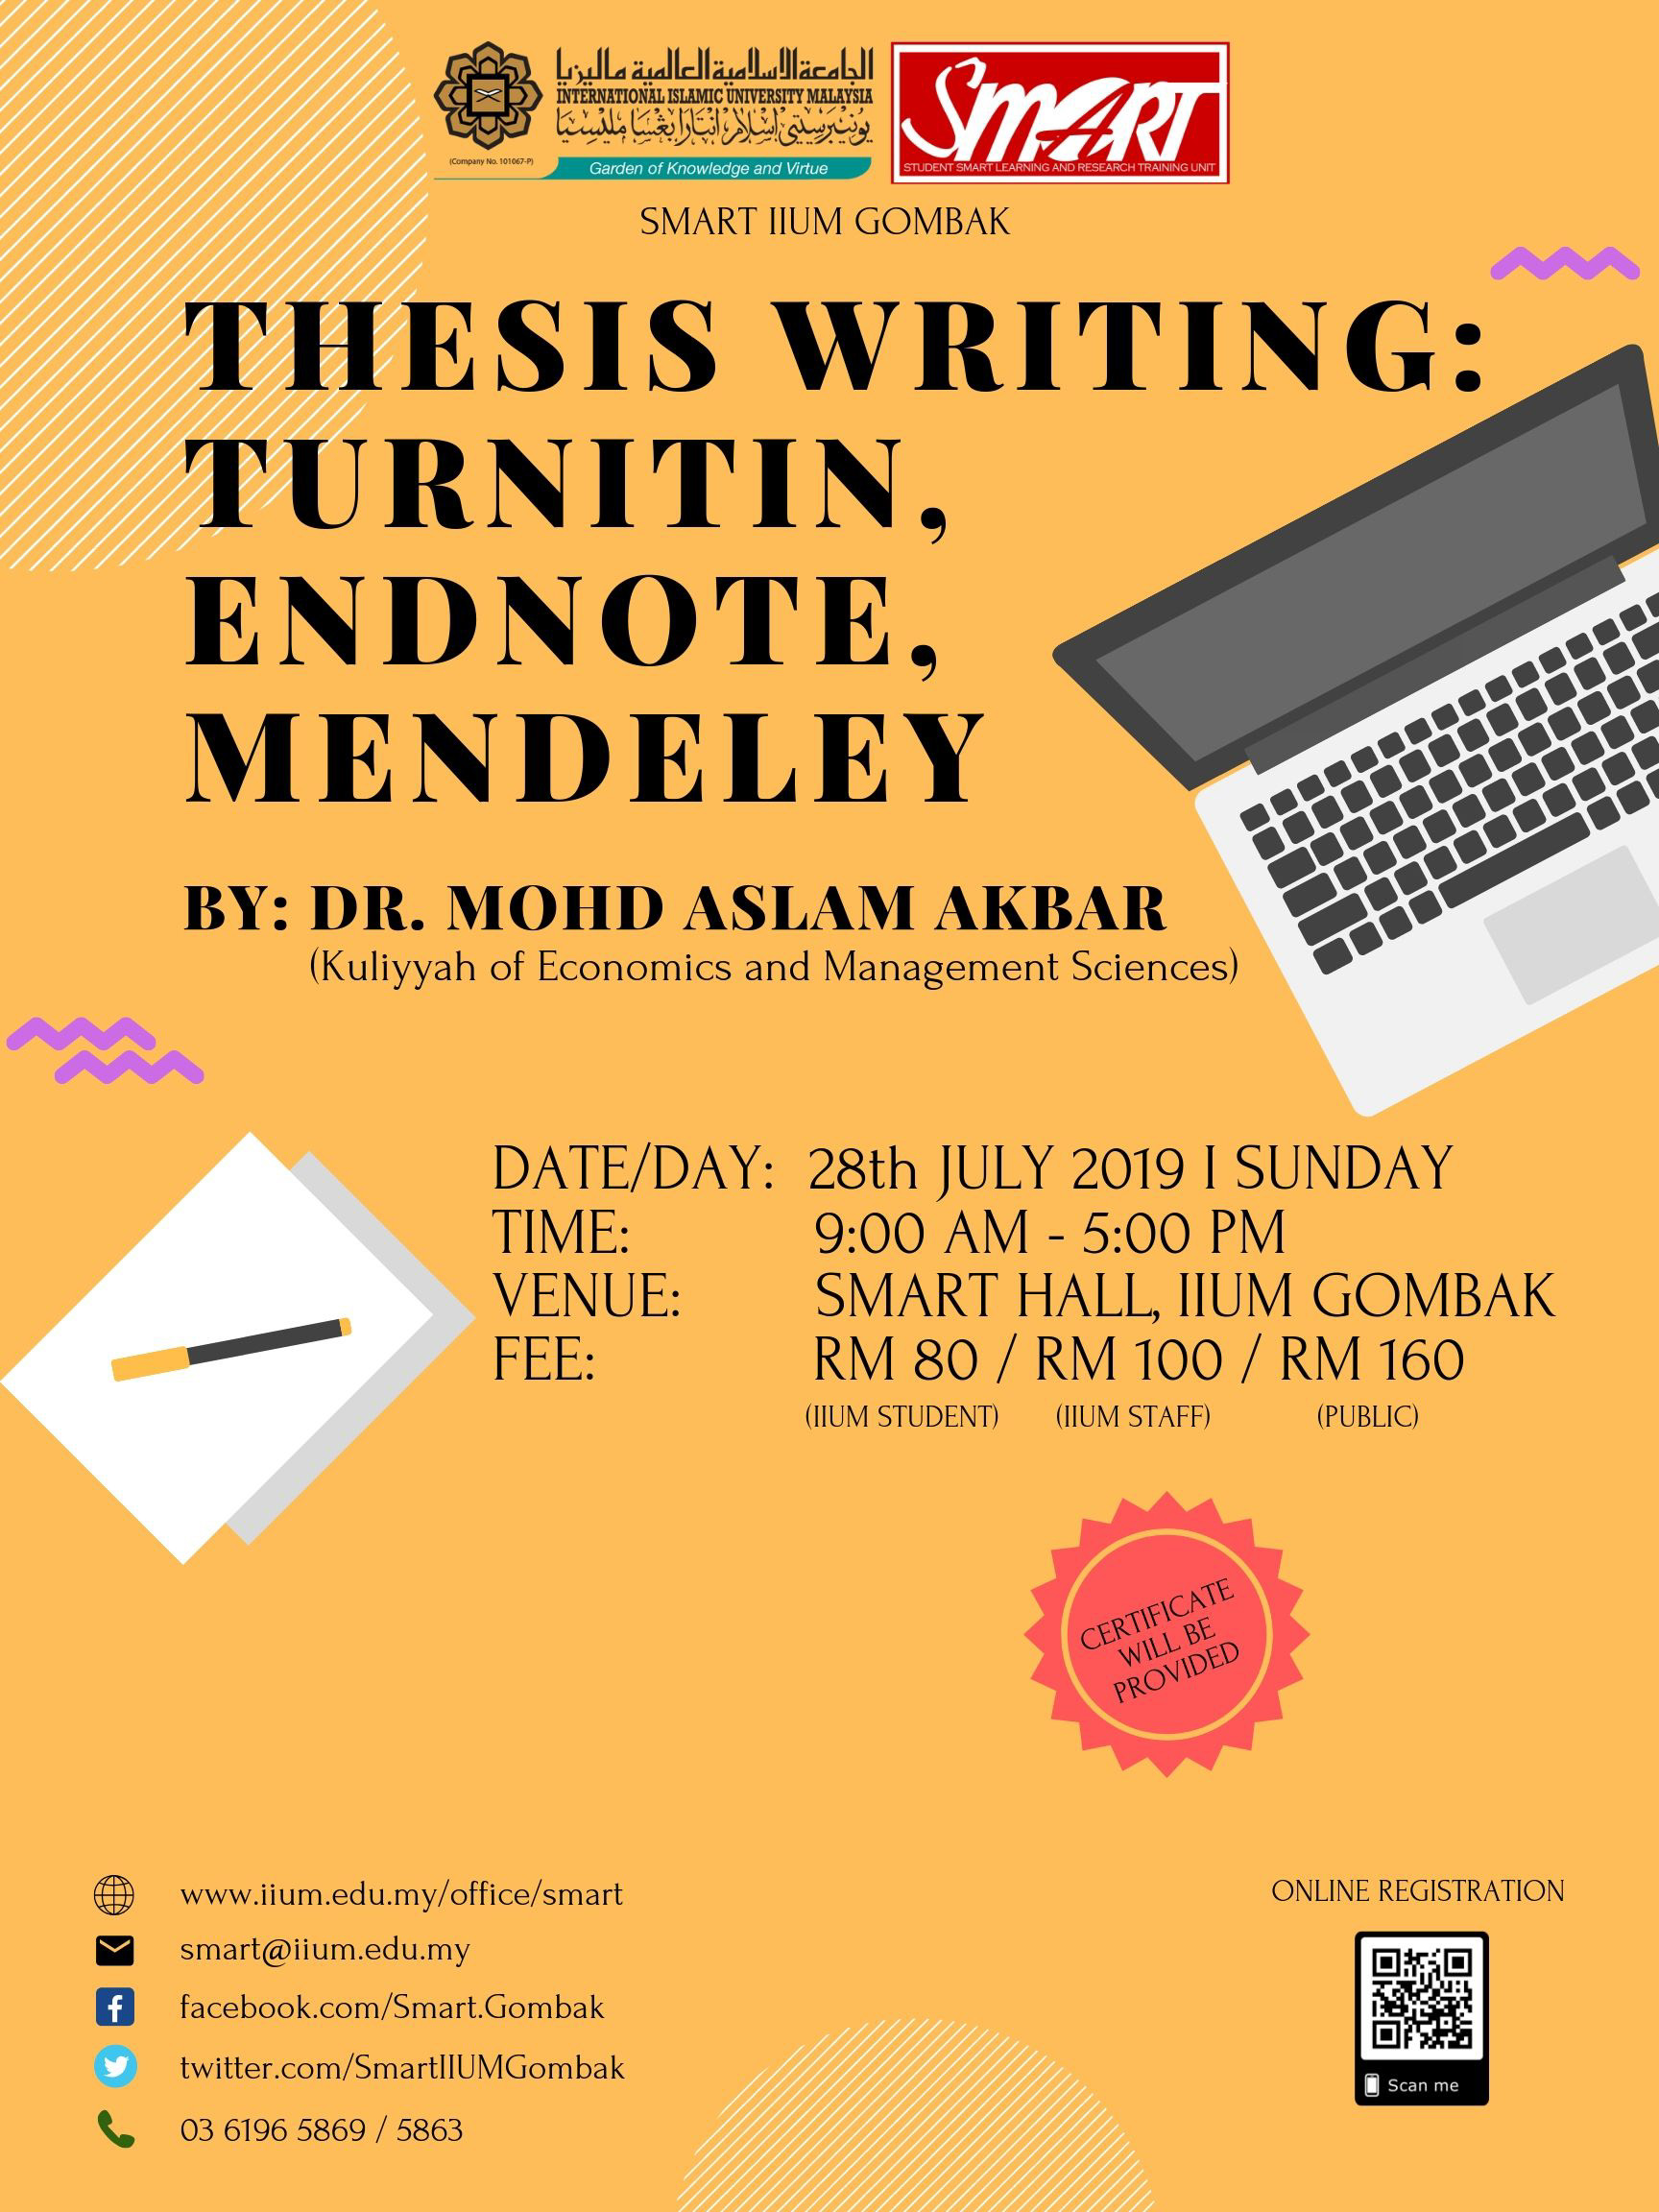 WORKSHOP : THESIS WRITING : TURNITIN, ENDNOTE, MENDELEY